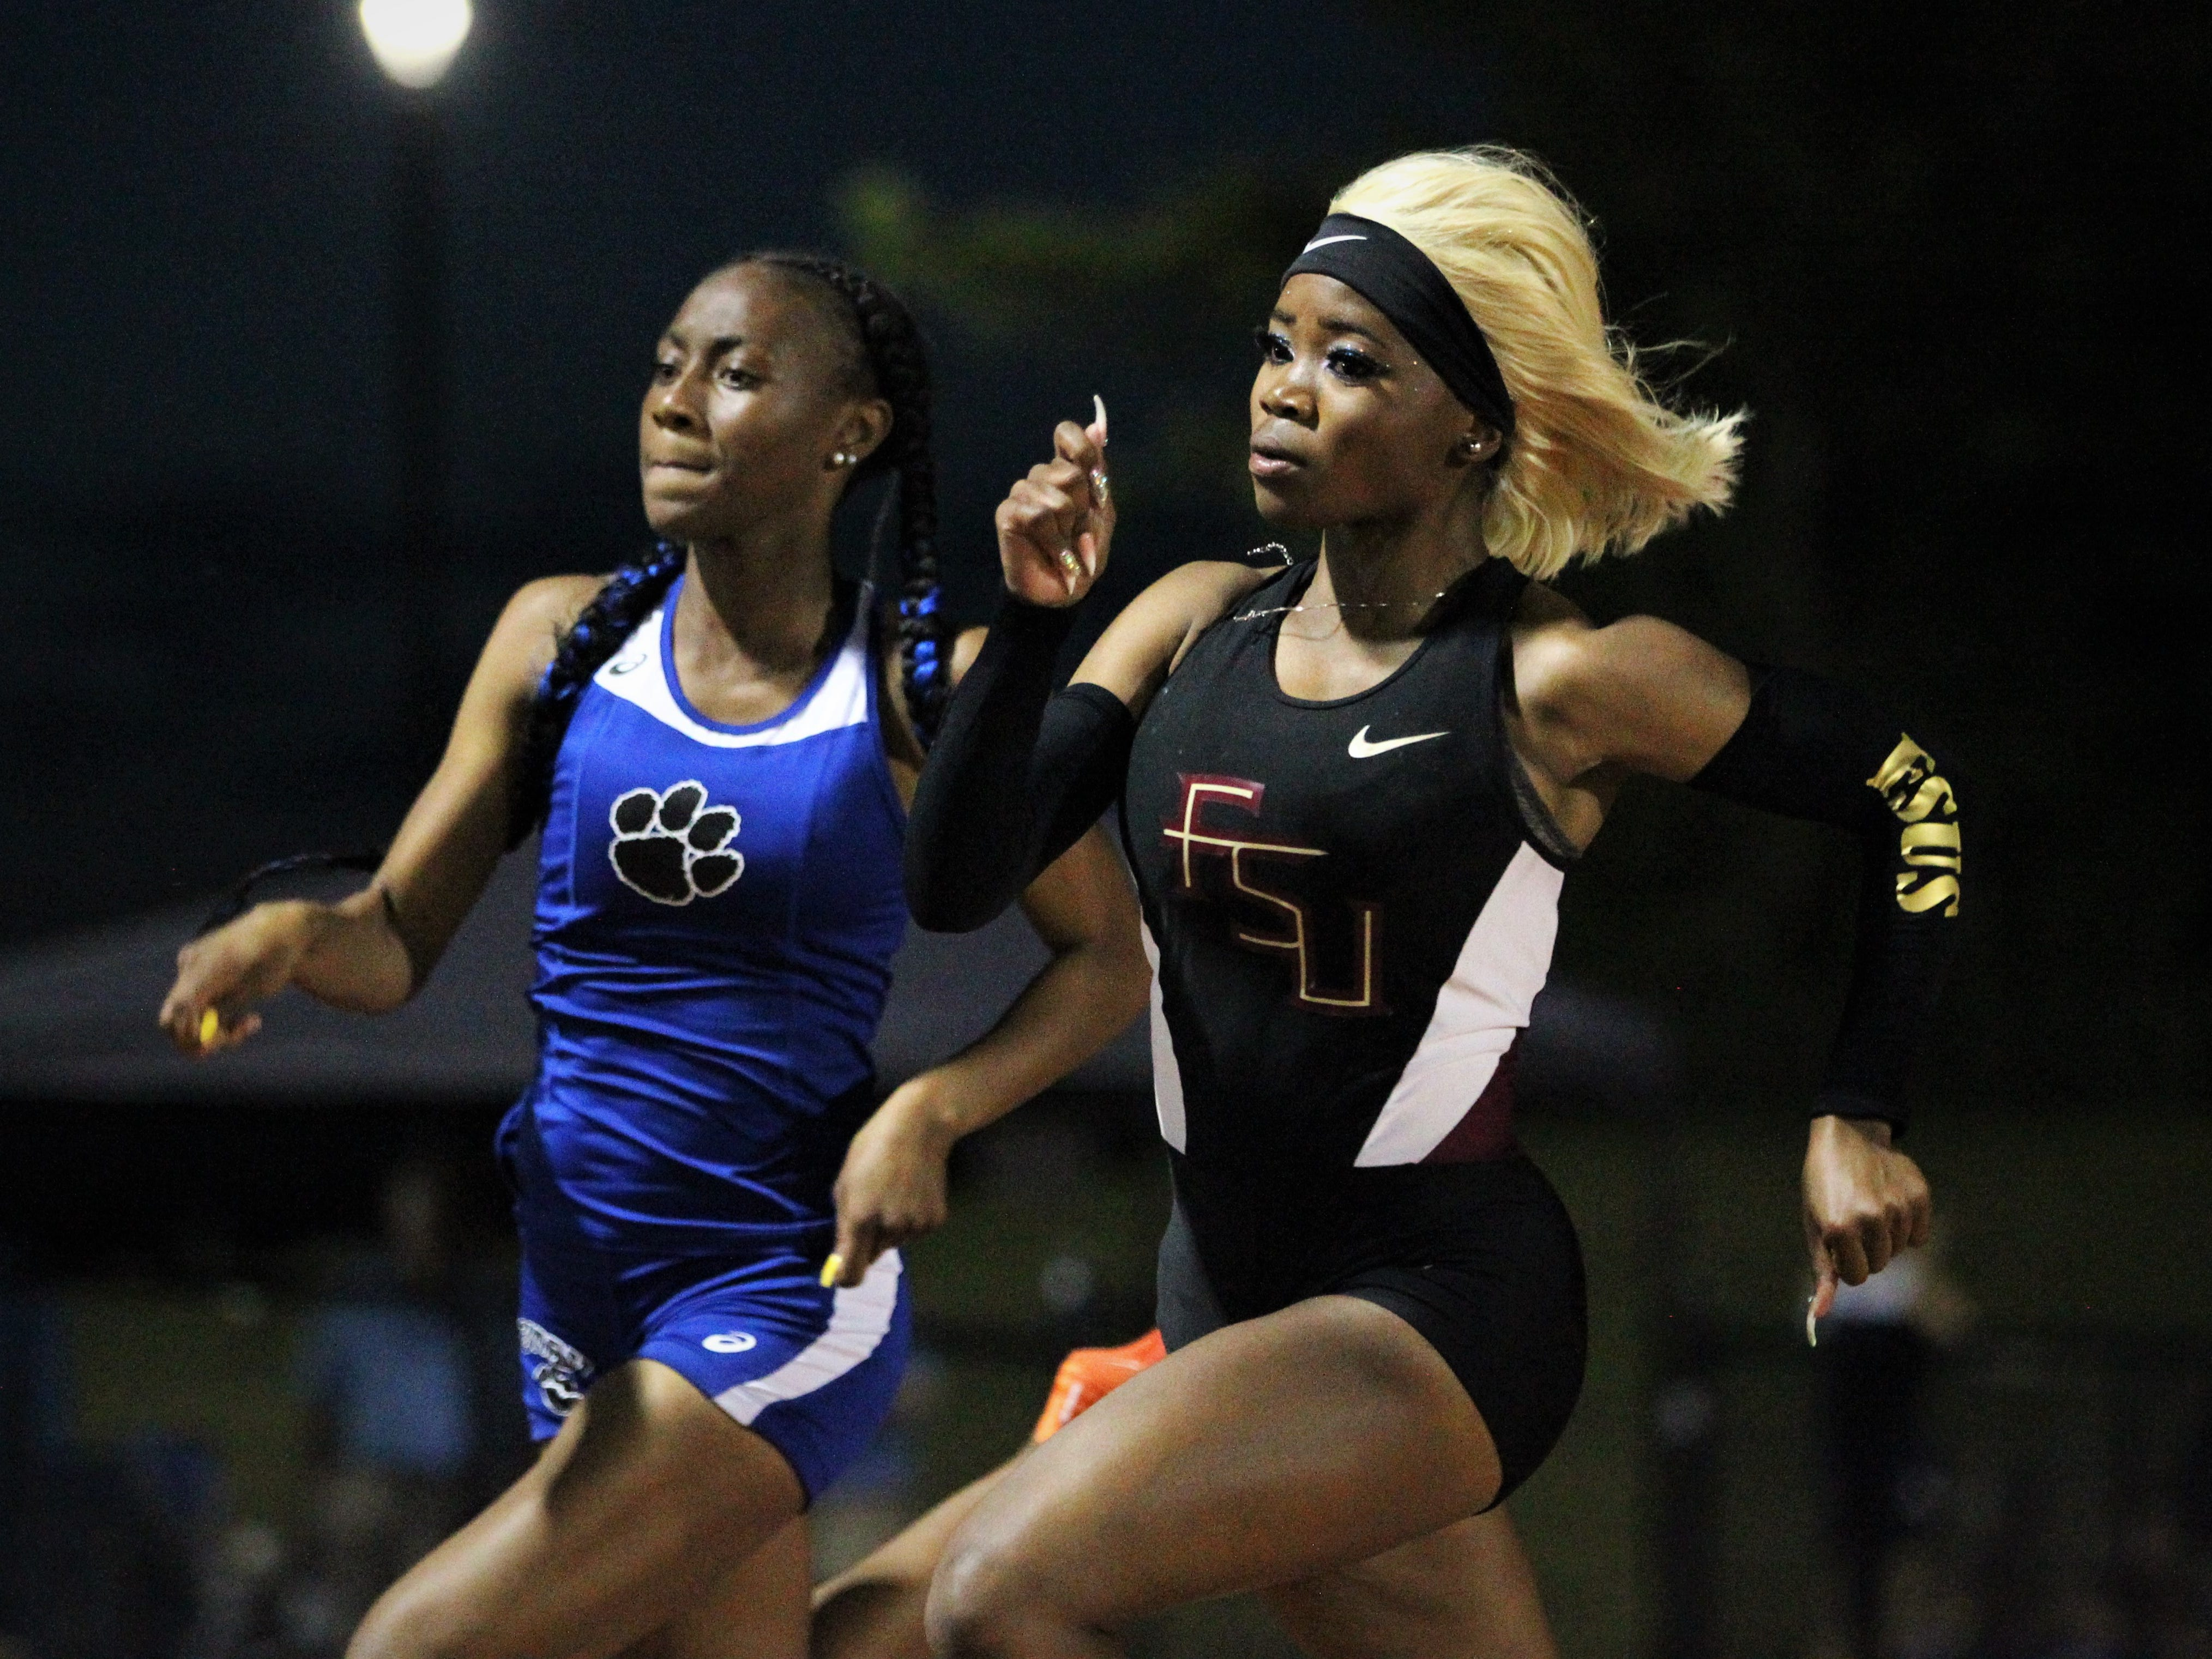 Florida High junior Jacquell Lewis races Godby junior A'Kyrah O'Banner in the 200 during the District 2-2A track and field meet at Florida High on Saturday, April 13, 2019.